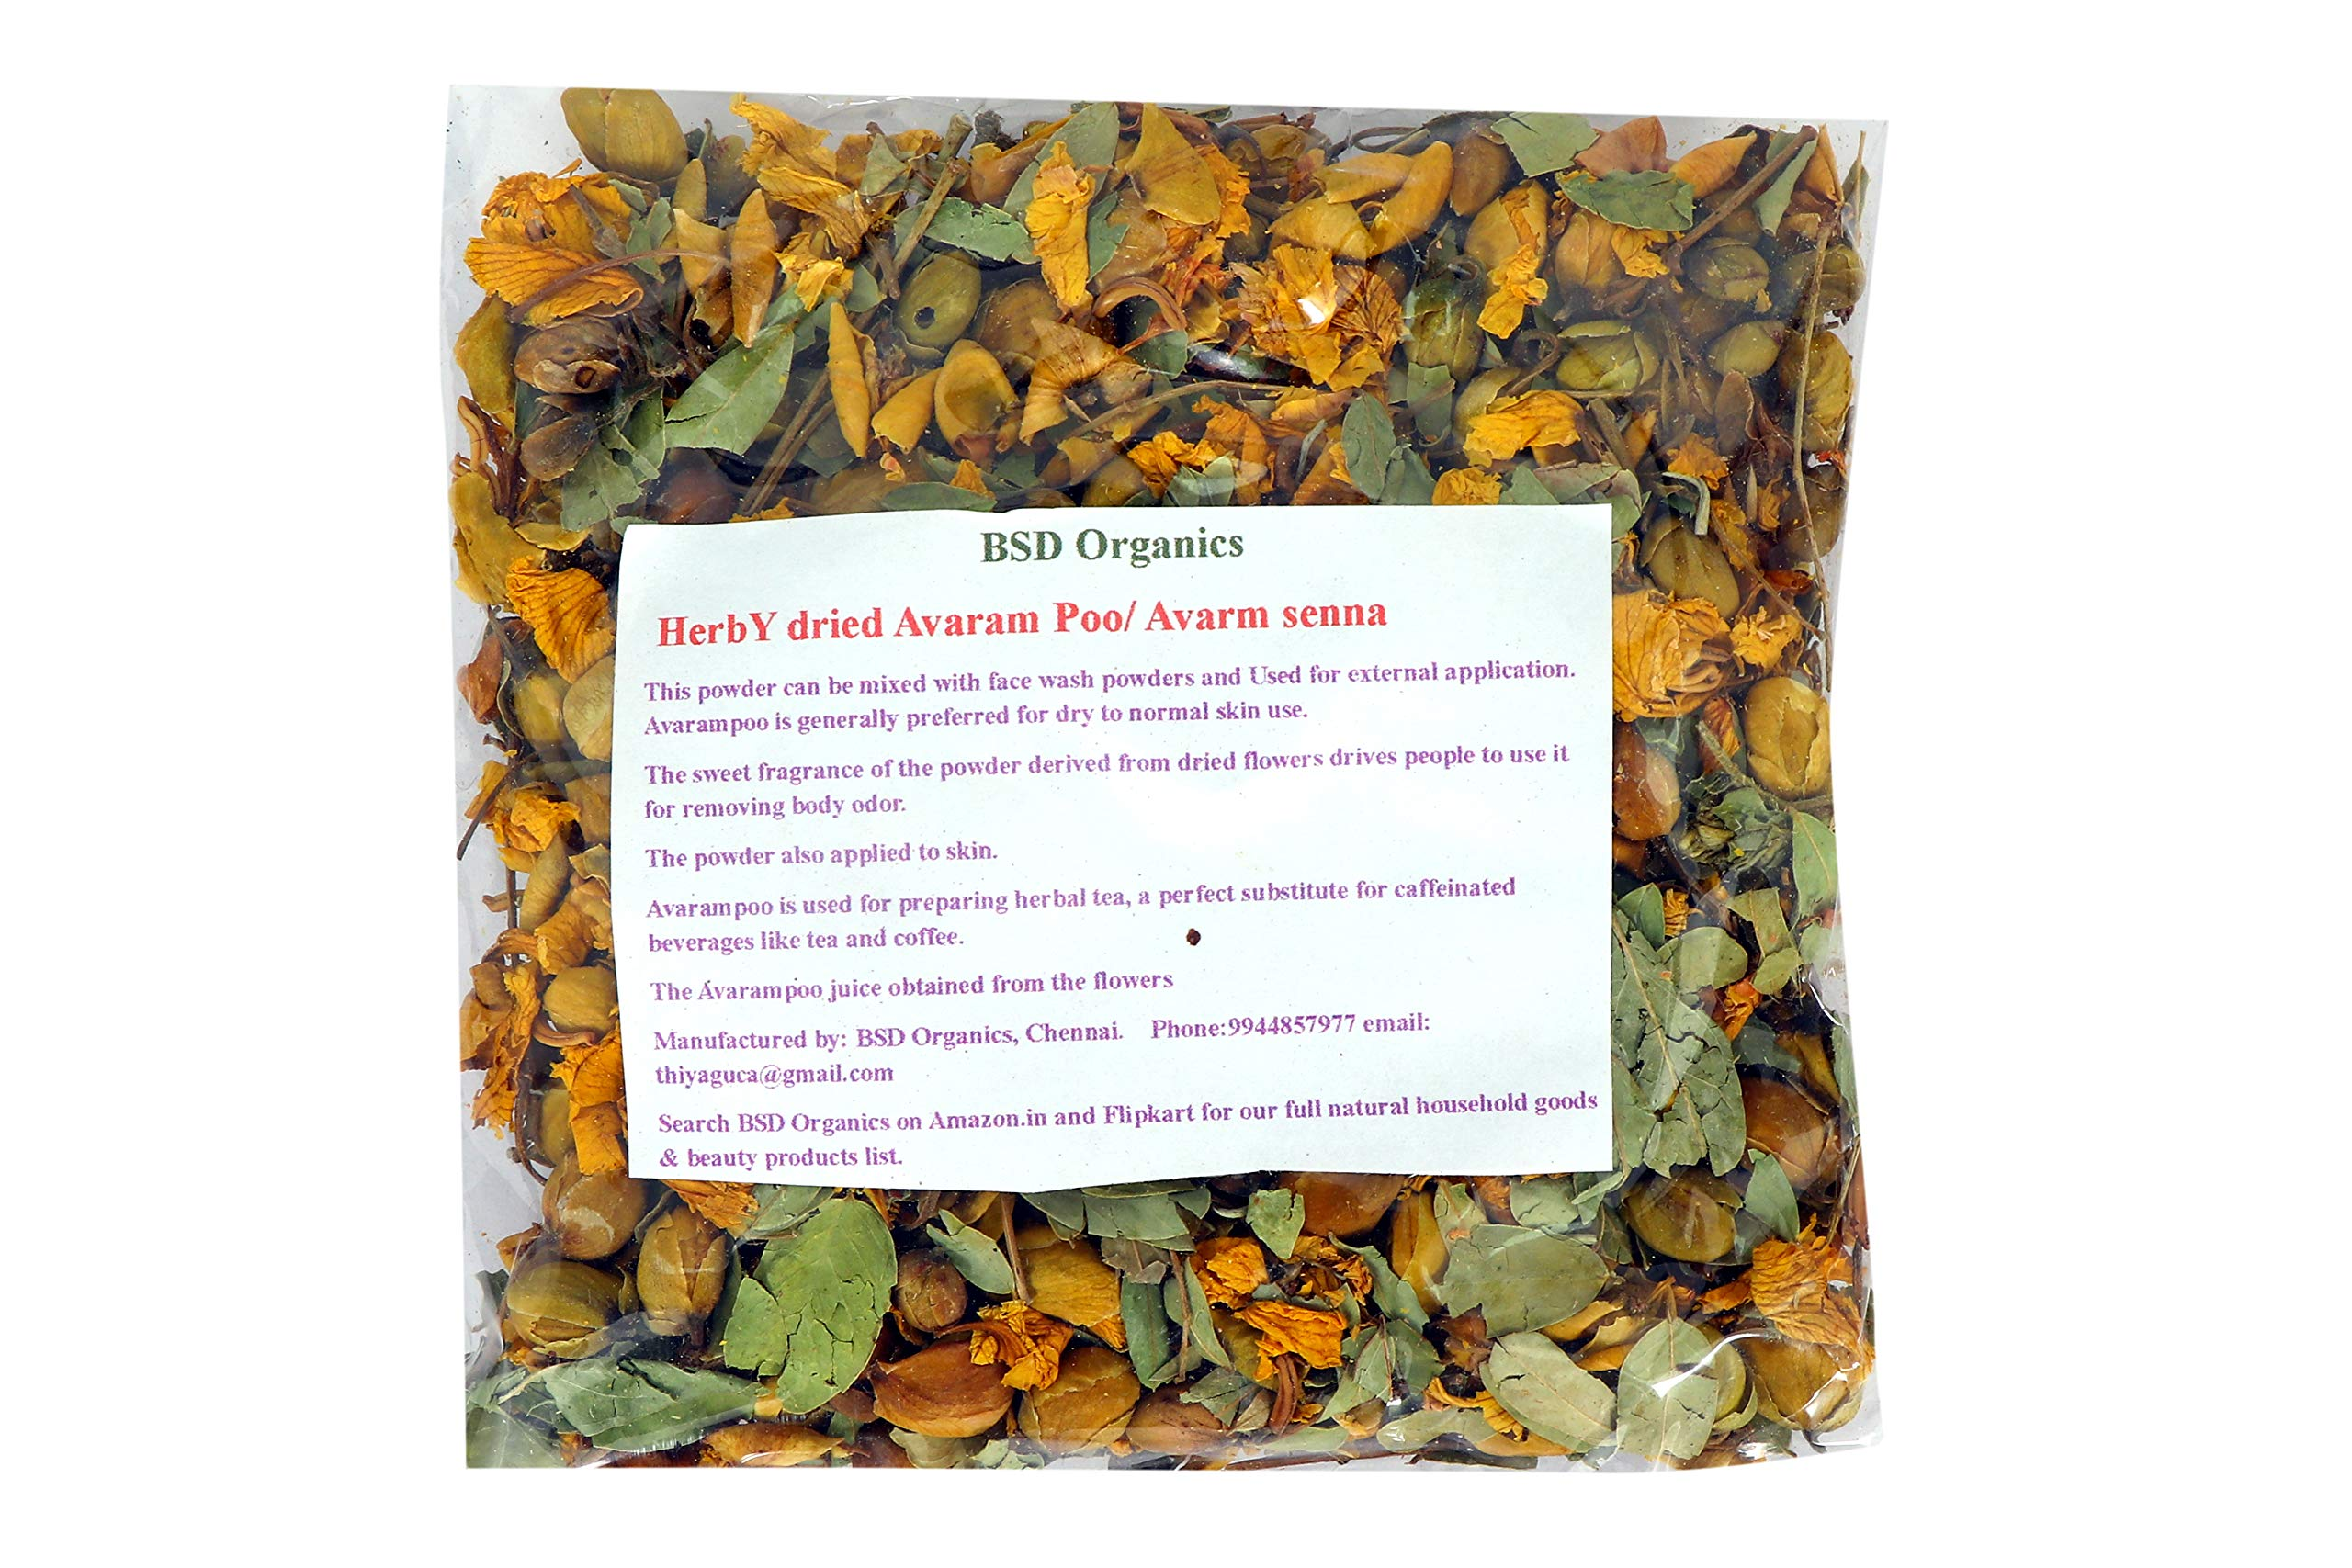 BSD Organics HerbY dried Avaram Poo/Avarm senna/Senna Auriculata/Tanner's cassia/Tamgedu for tea, skin care and more - 100 gram